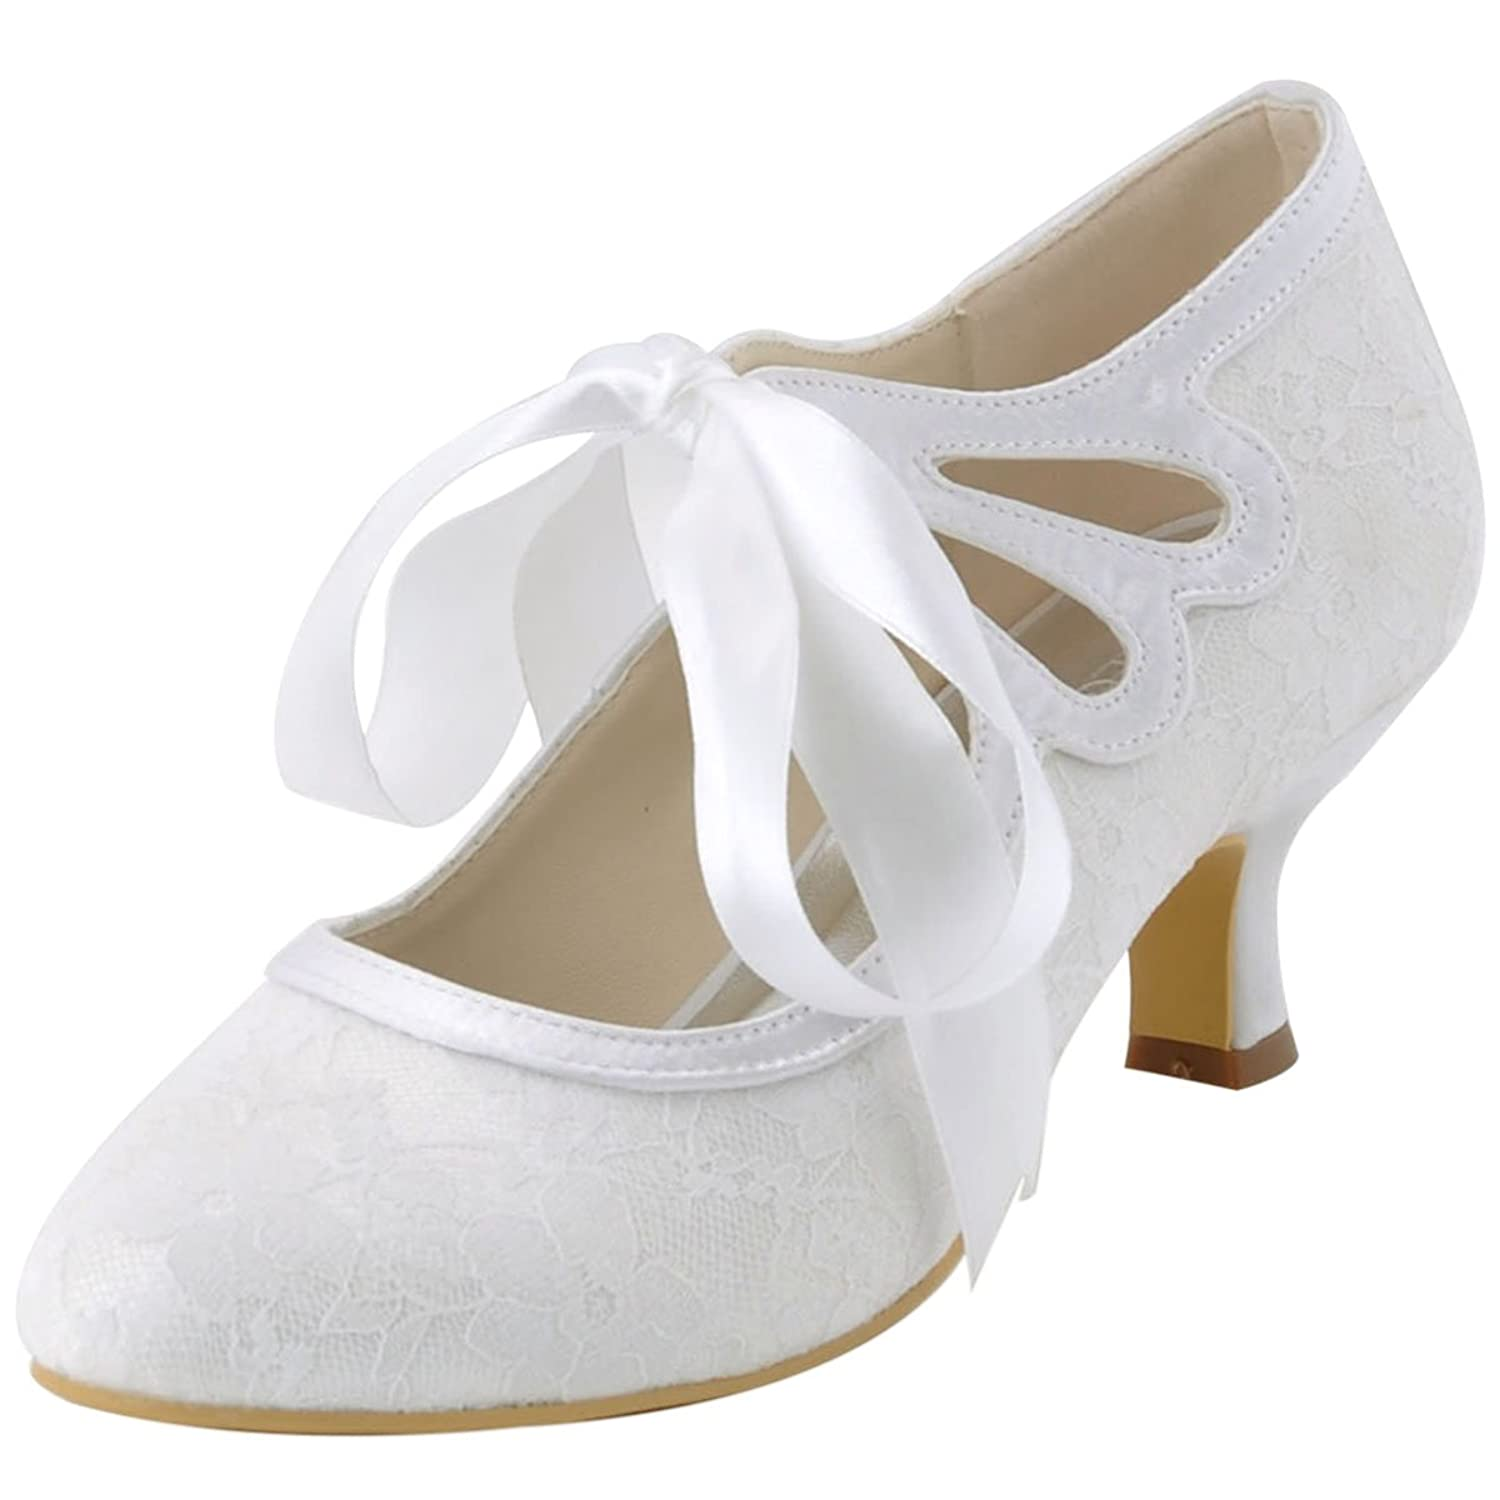 Vintage Style Shoes, Vintage Inspired Shoes ElegantPark HC1521 Womens Mary Jane Closed Toe Low Heel Pumps Lace Wedding Dress Shoes $48.95 AT vintagedancer.com